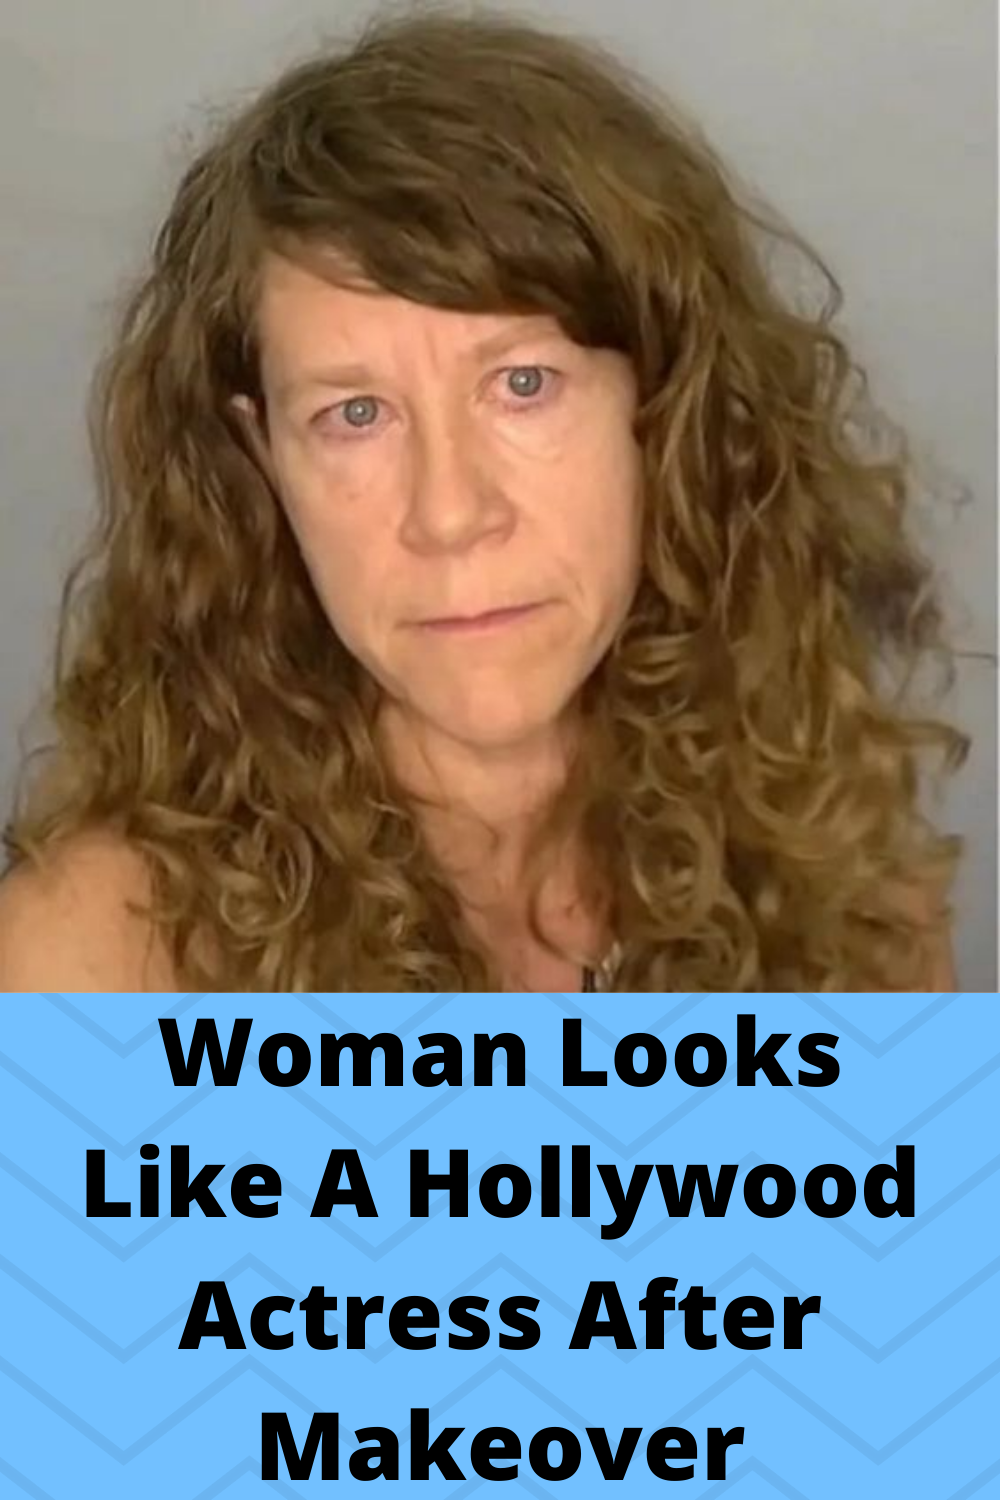 #Woman Looks Like A #Hollywood #Actress After #Makeover